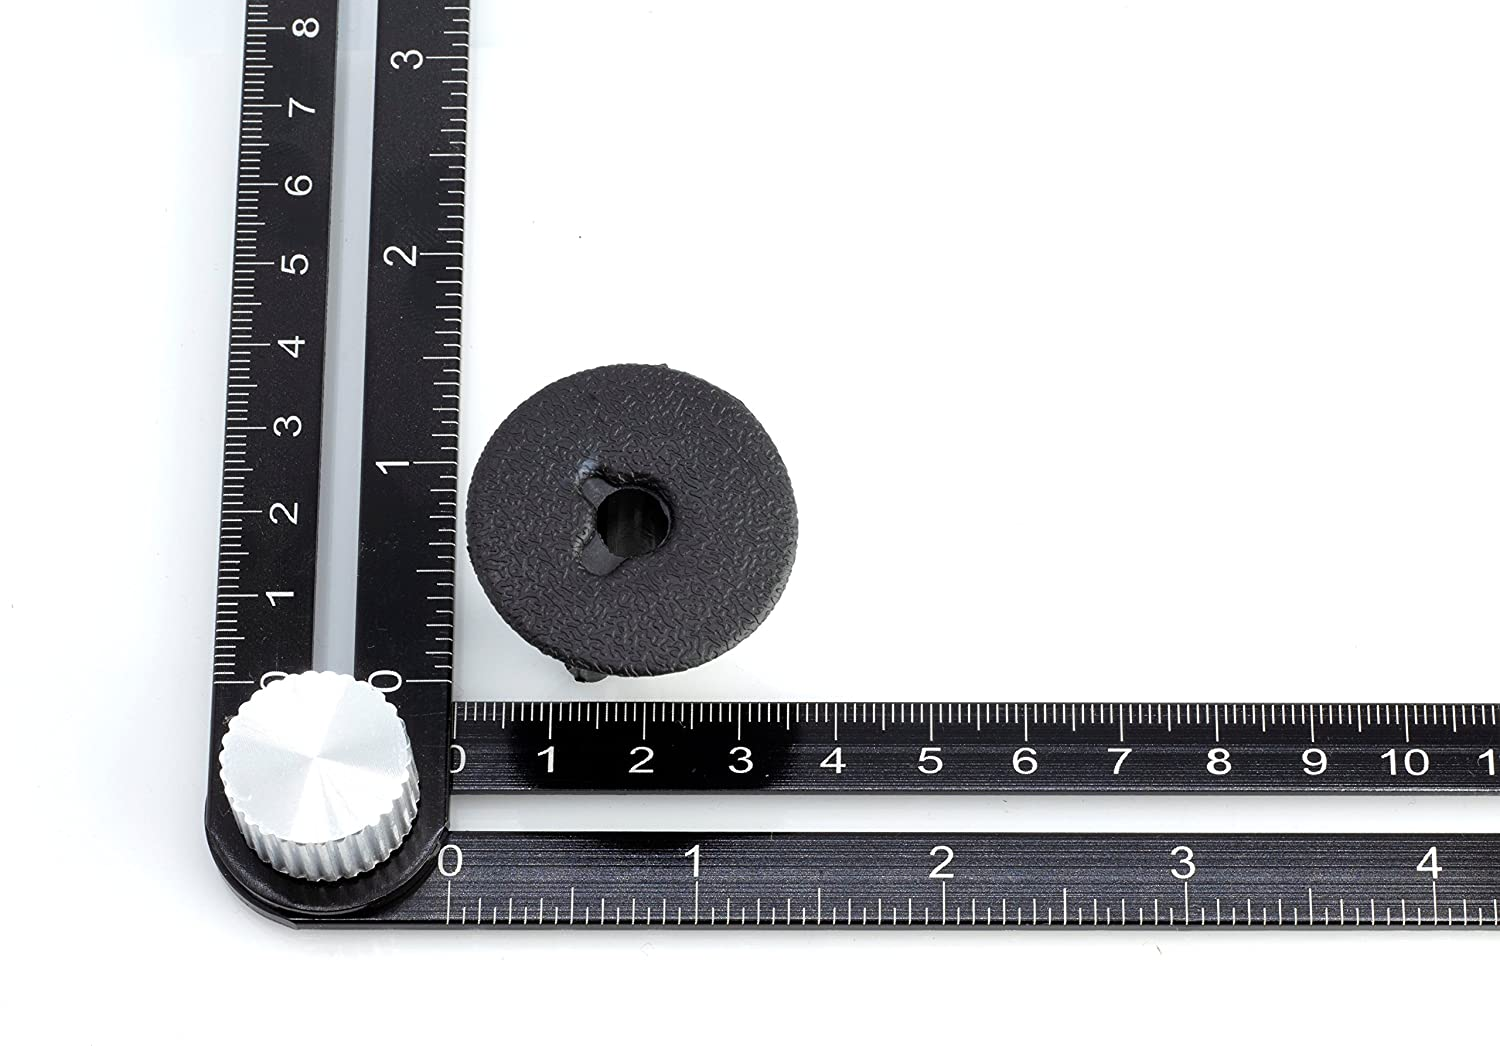 Amazon.com: THE CIMPLE CO Feed Through Bushing (Grommet), Outdoor ...